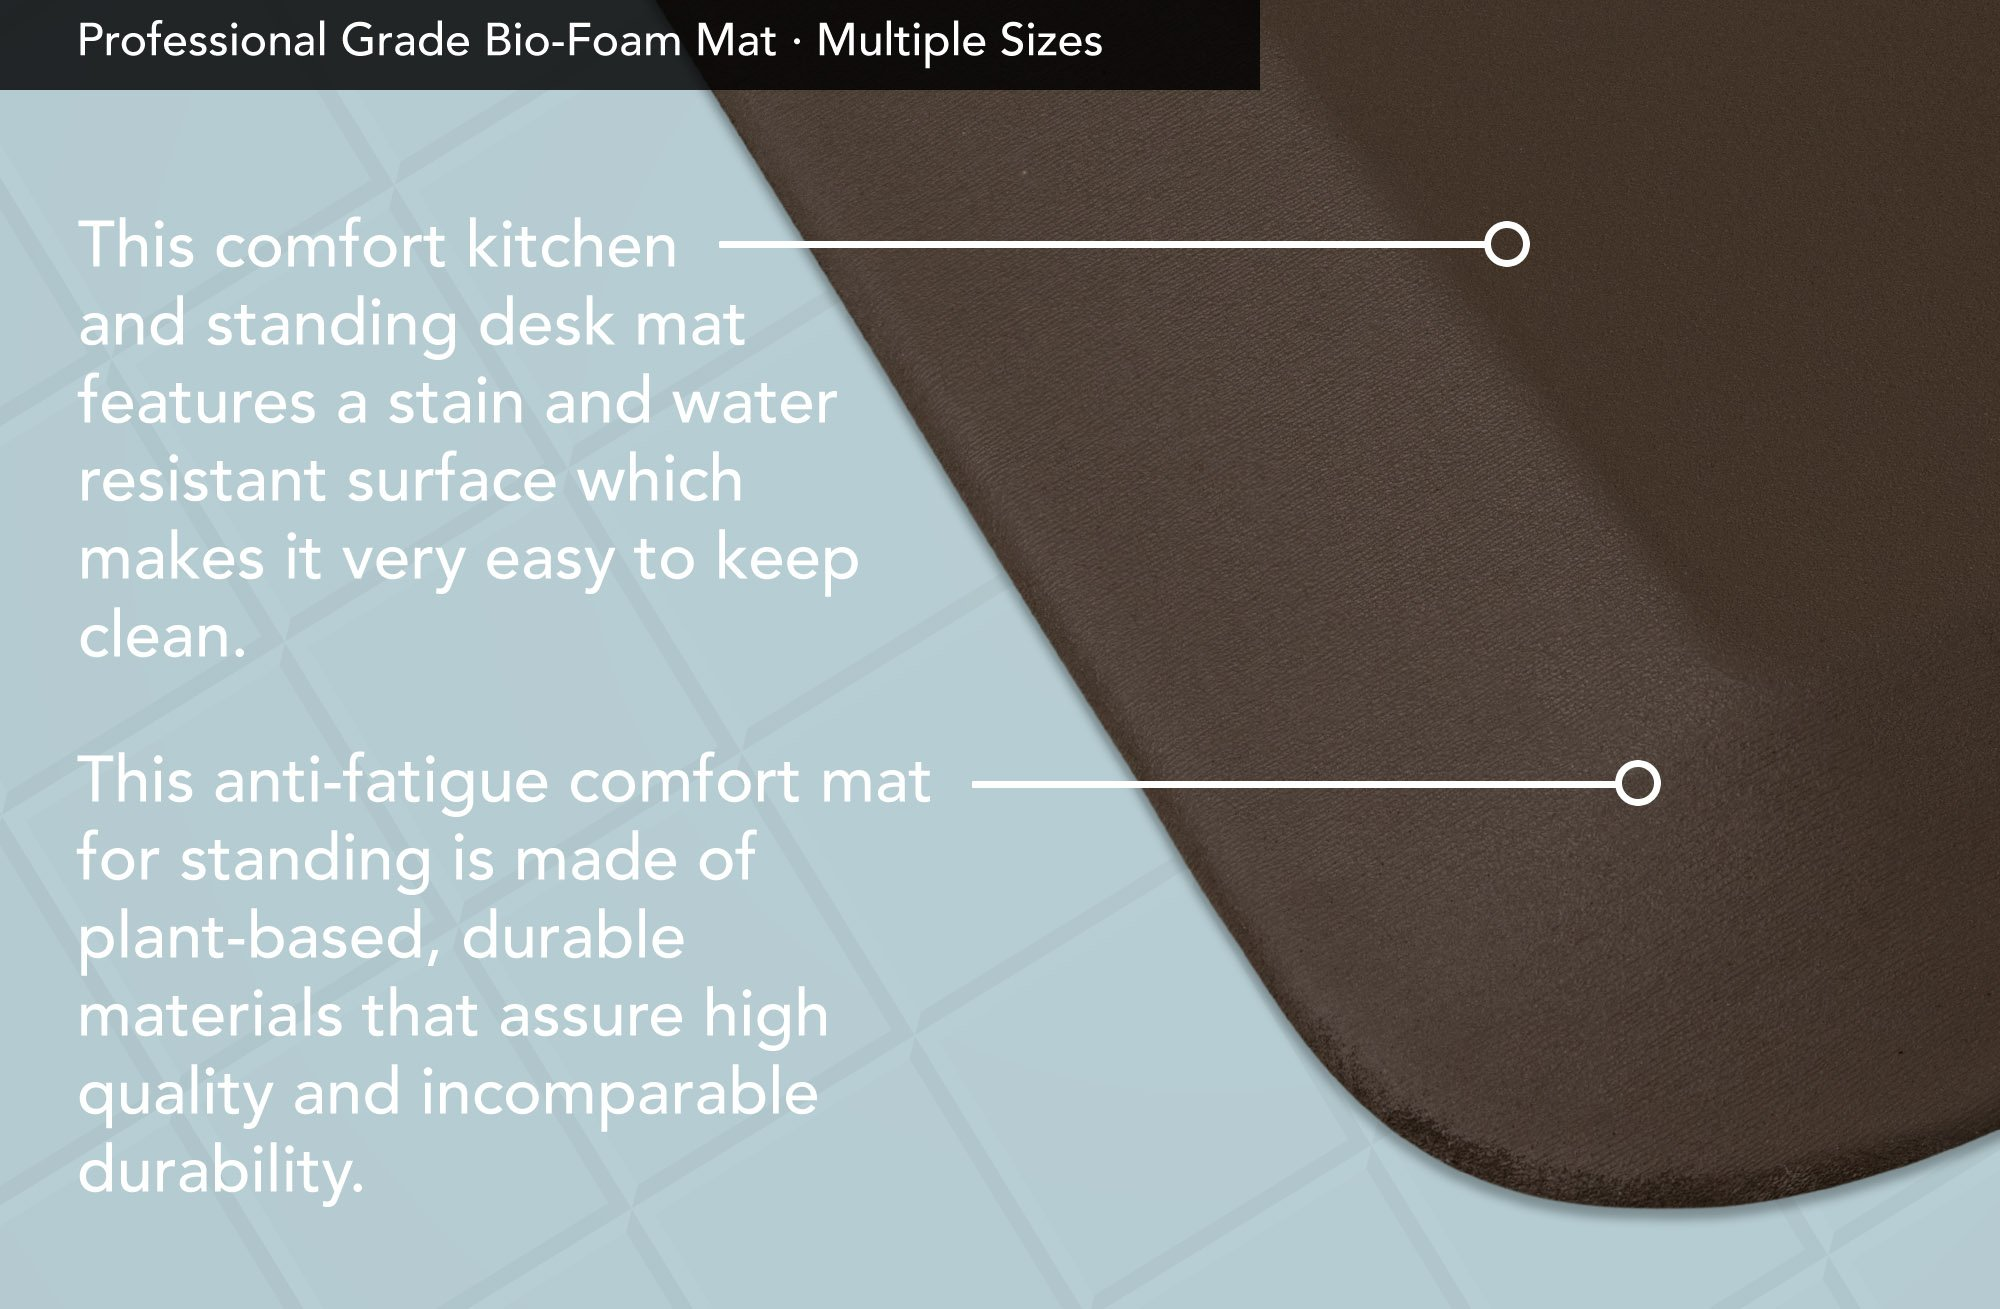 """NewLife by GelPro Professional Grade Anti-Fatigue Kitchen & Office Comfort Mat, 20x72, Earth ¾"""" Bio-Foam Mat with non-slip bottom for health & wellness by NewLife by GelPro (Image #4)"""